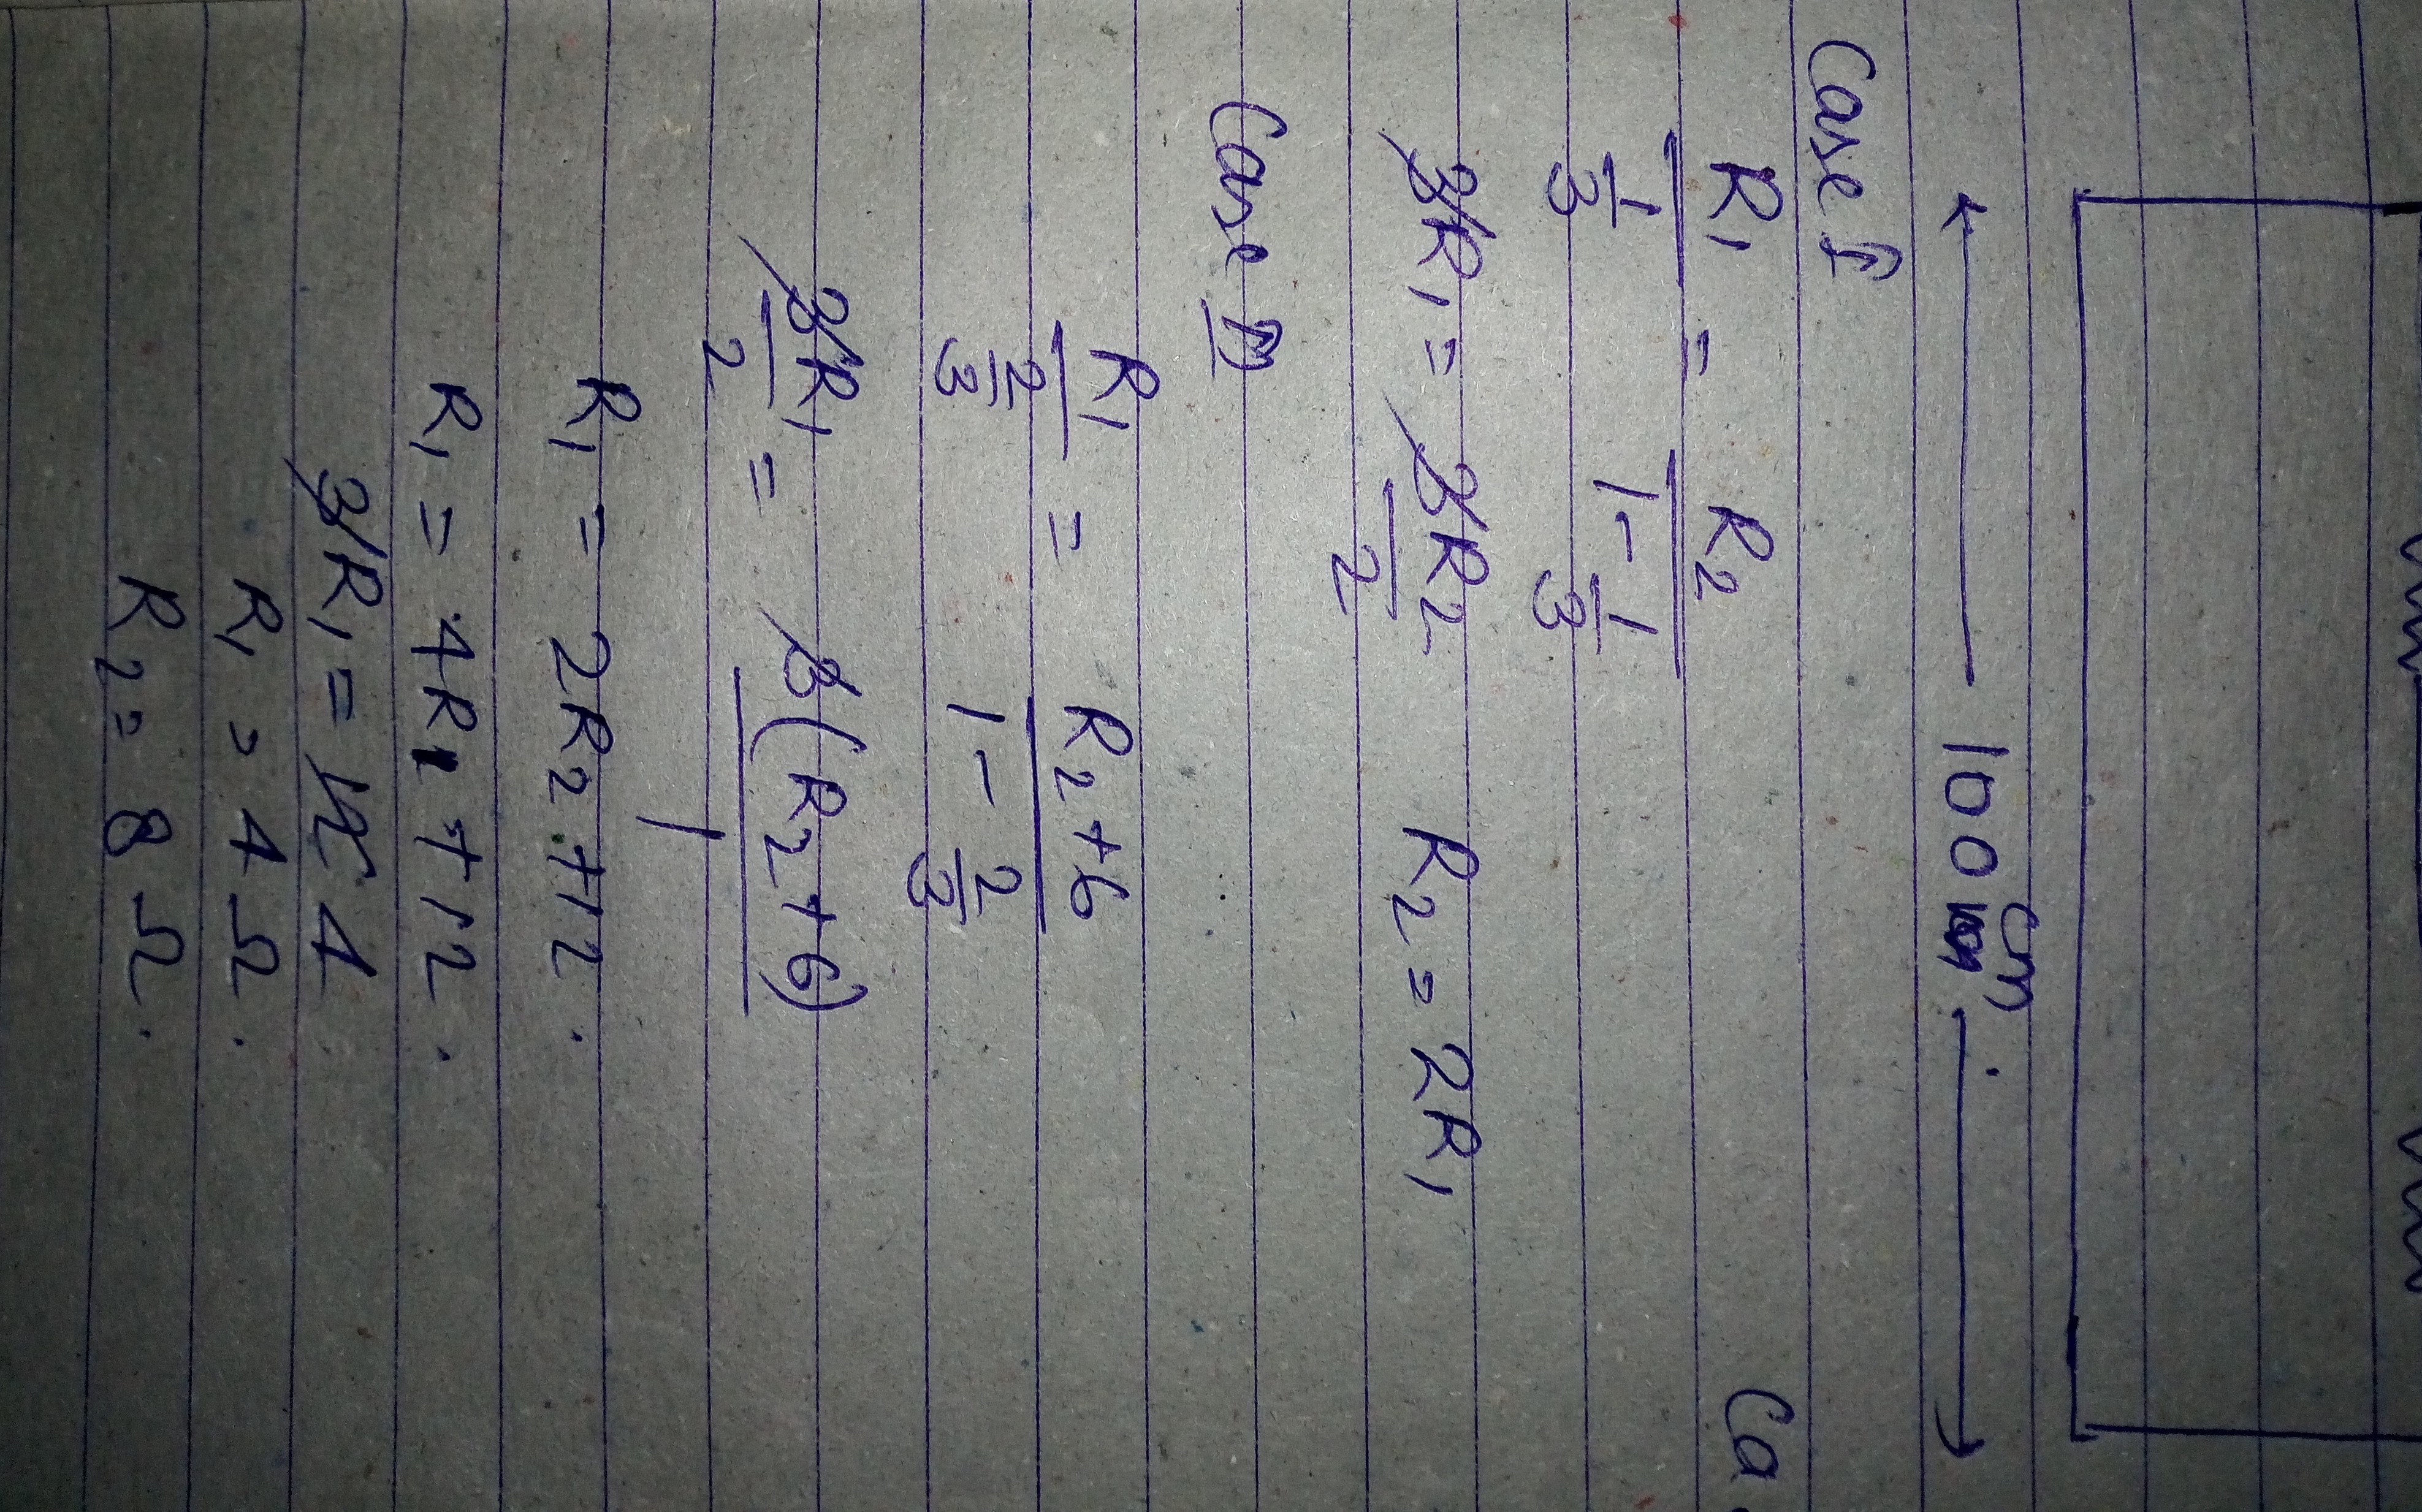 questions 51 meter bridge physics class 12 - Brainly.in